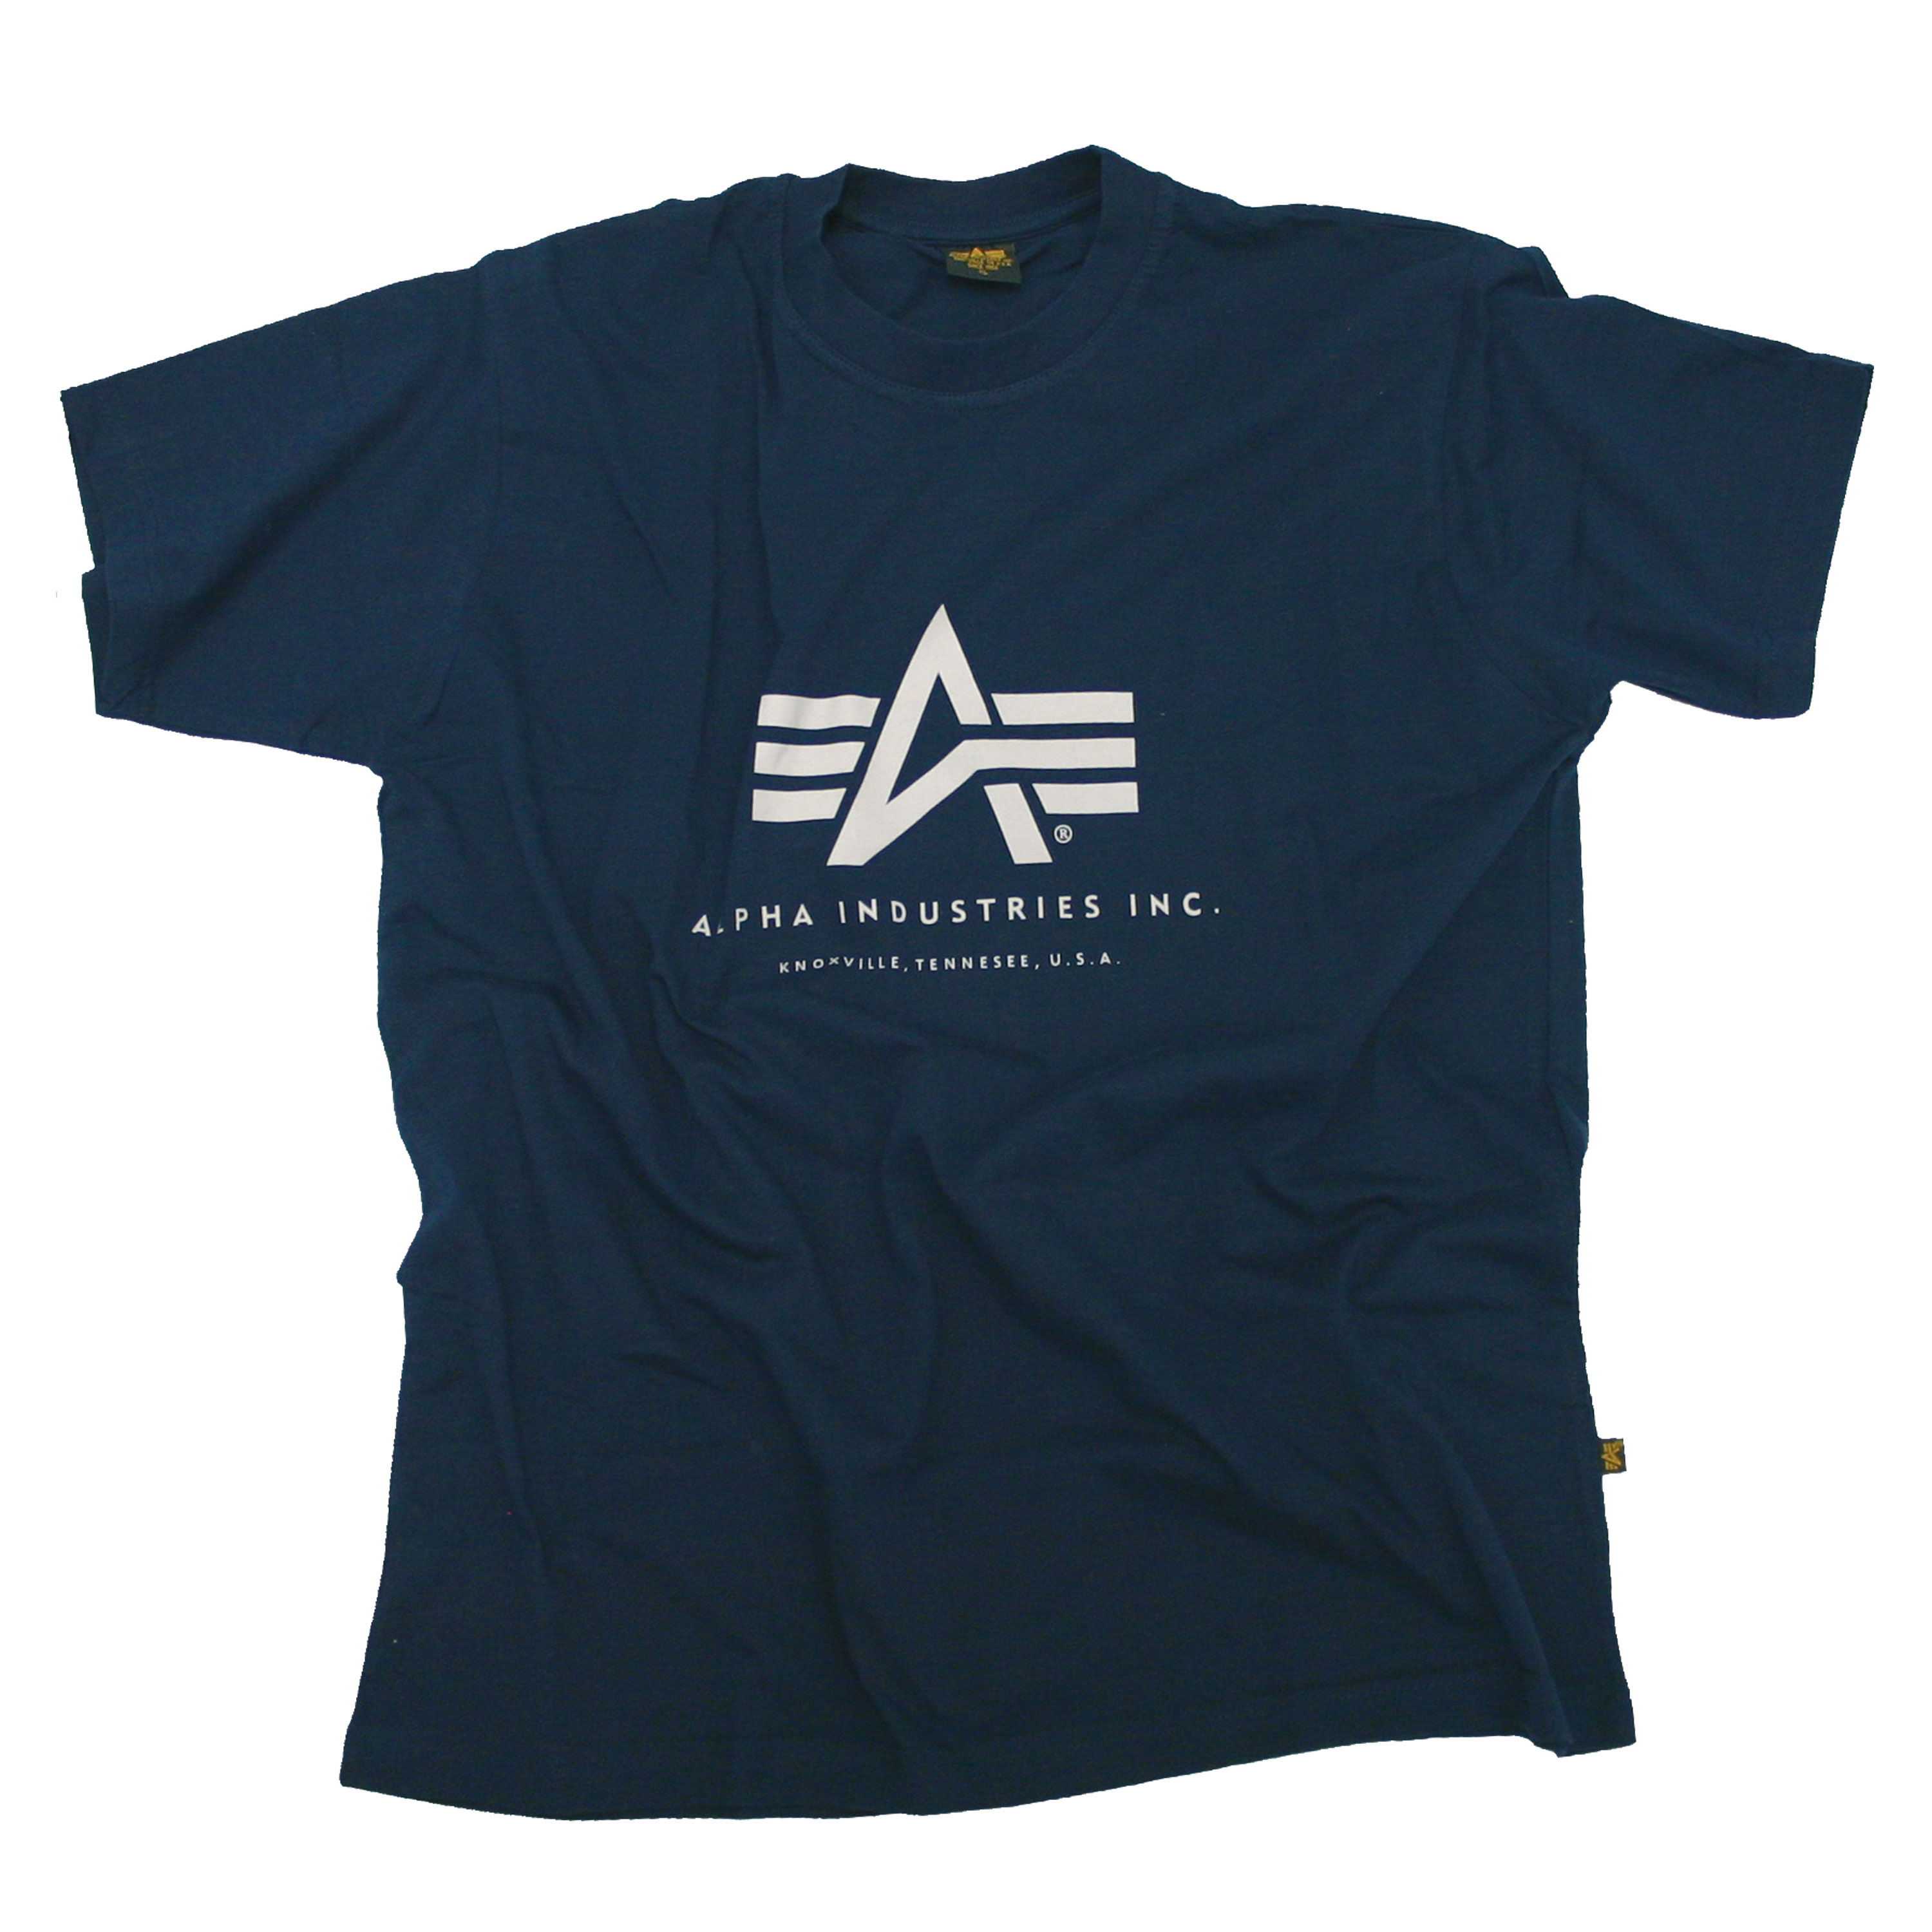 T-Shirt Alpha Industries Basic blau